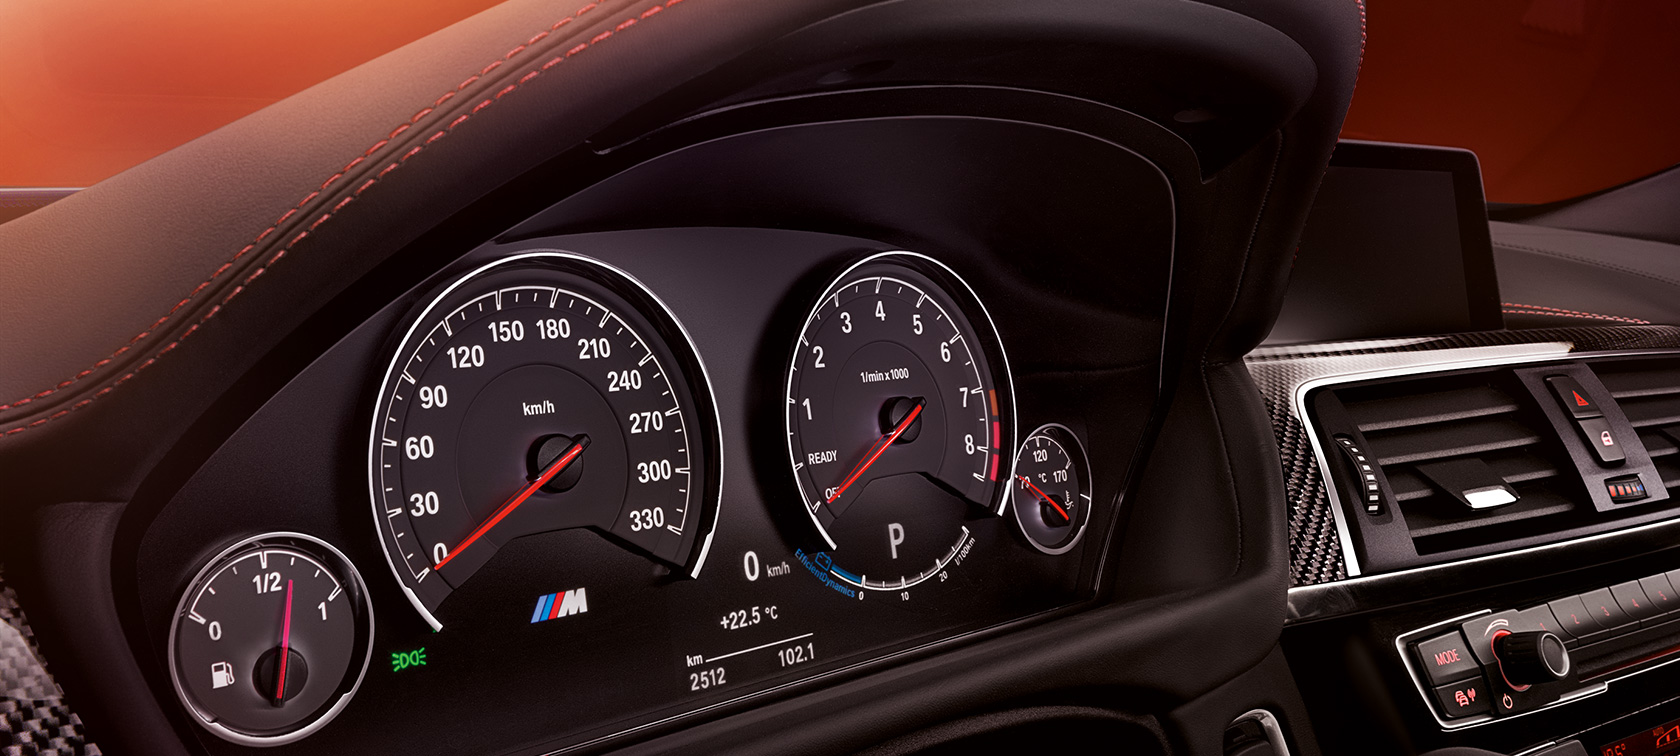 CONNECTIVITY IN THE BMW M4 COUPÉ.